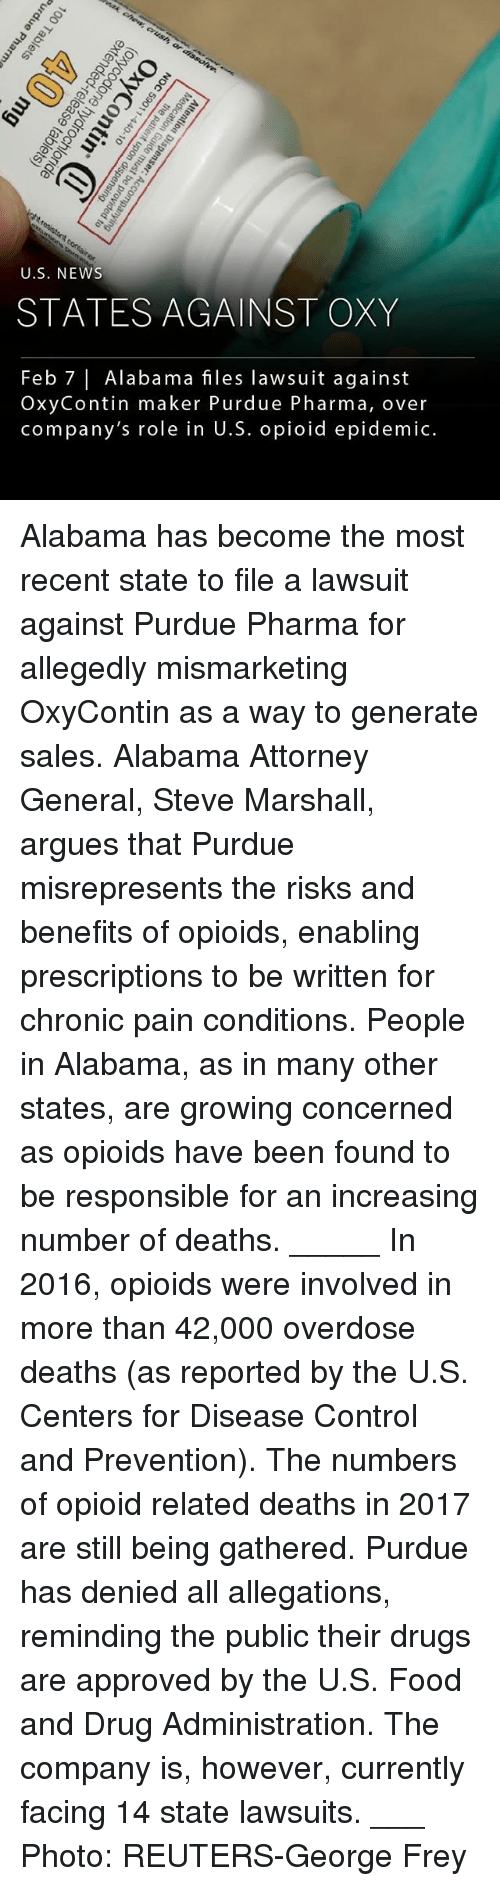 Drugs, Food, and Memes: U.S. NEWs  STATES AGAINST OXY  Feb 7| Alabama files lawsuit against  OxyContin maker Purdue Pharma, over  company's role in U.S. opioid epidemic. Alabama has become the most recent state to file a lawsuit against Purdue Pharma for allegedly mismarketing OxyContin as a way to generate sales. Alabama Attorney General, Steve Marshall, argues that Purdue misrepresents the risks and benefits of opioids, enabling prescriptions to be written for chronic pain conditions. People in Alabama, as in many other states, are growing concerned as opioids have been found to be responsible for an increasing number of deaths. _____ In 2016, opioids were involved in more than 42,000 overdose deaths (as reported by the U.S. Centers for Disease Control and Prevention). The numbers of opioid related deaths in 2017 are still being gathered. Purdue has denied all allegations, reminding the public their drugs are approved by the U.S. Food and Drug Administration. The company is, however, currently facing 14 state lawsuits. ___ Photo: REUTERS-George Frey